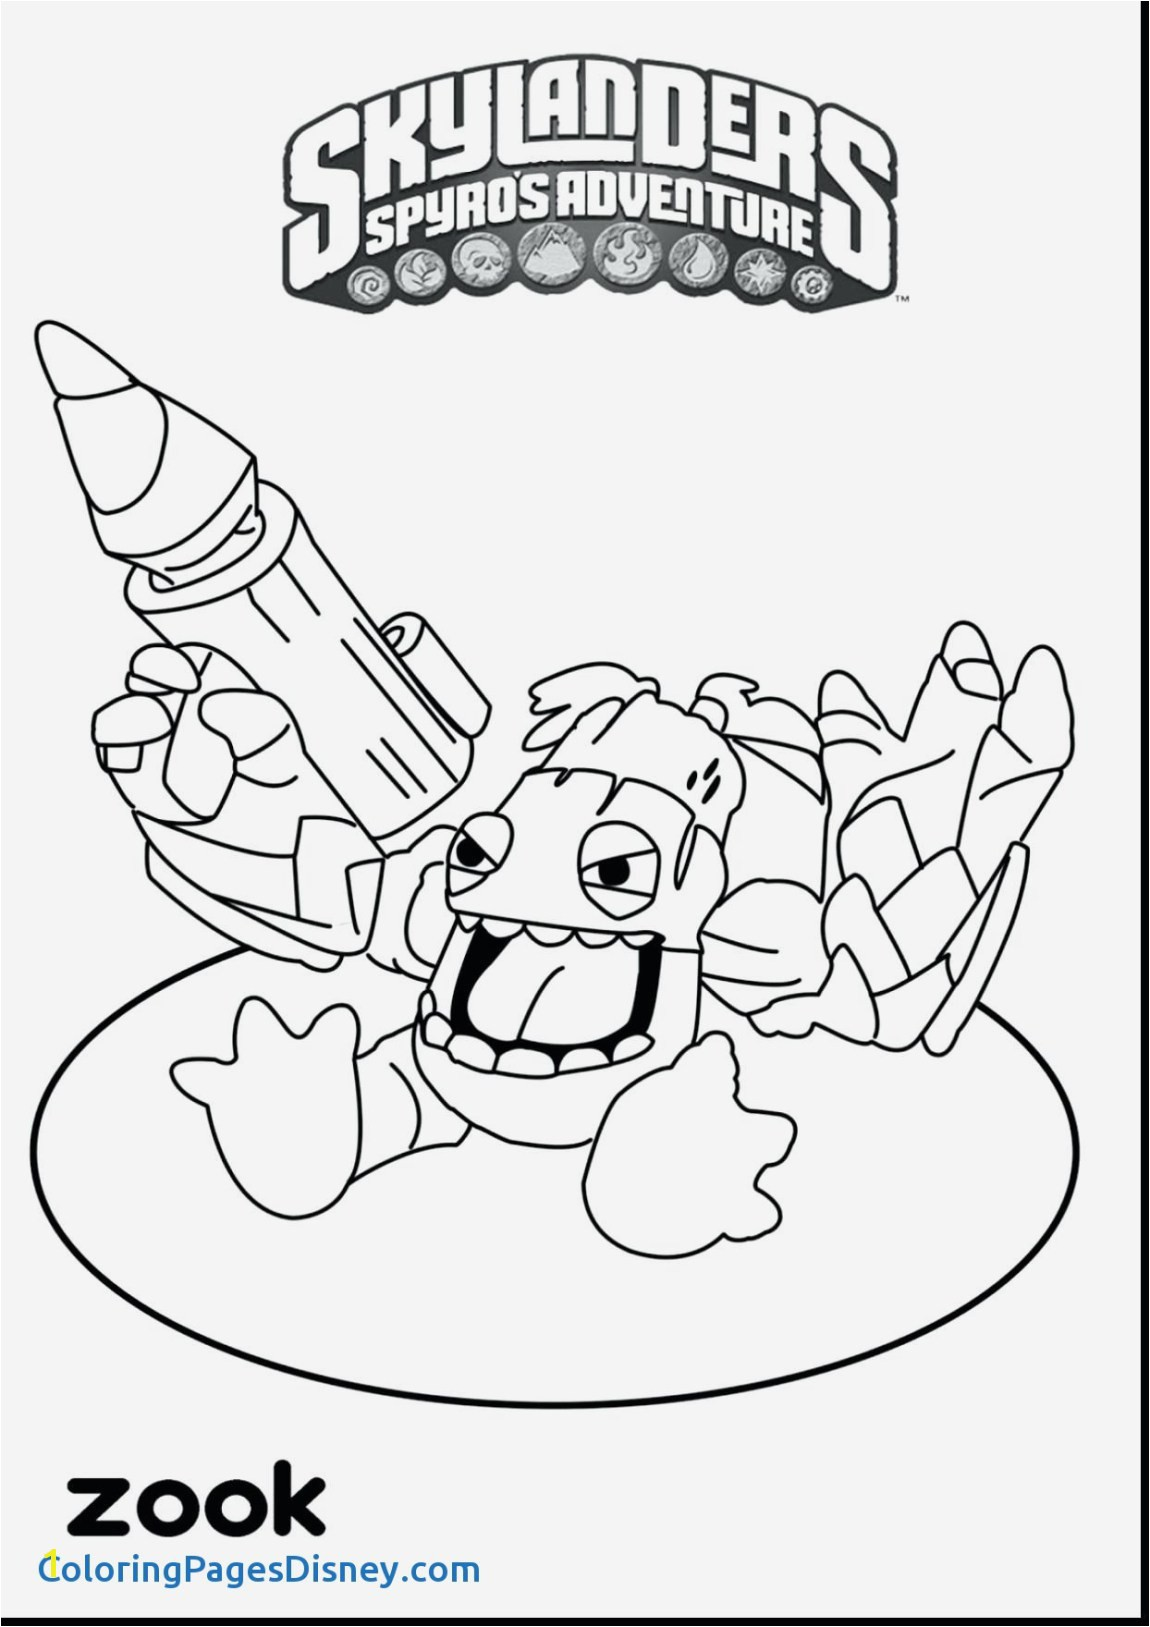 mother039s day coloring sheet kids printable c2b7 goblin coloring pages lovely best coloring skylander giants coloring pages o d colouring